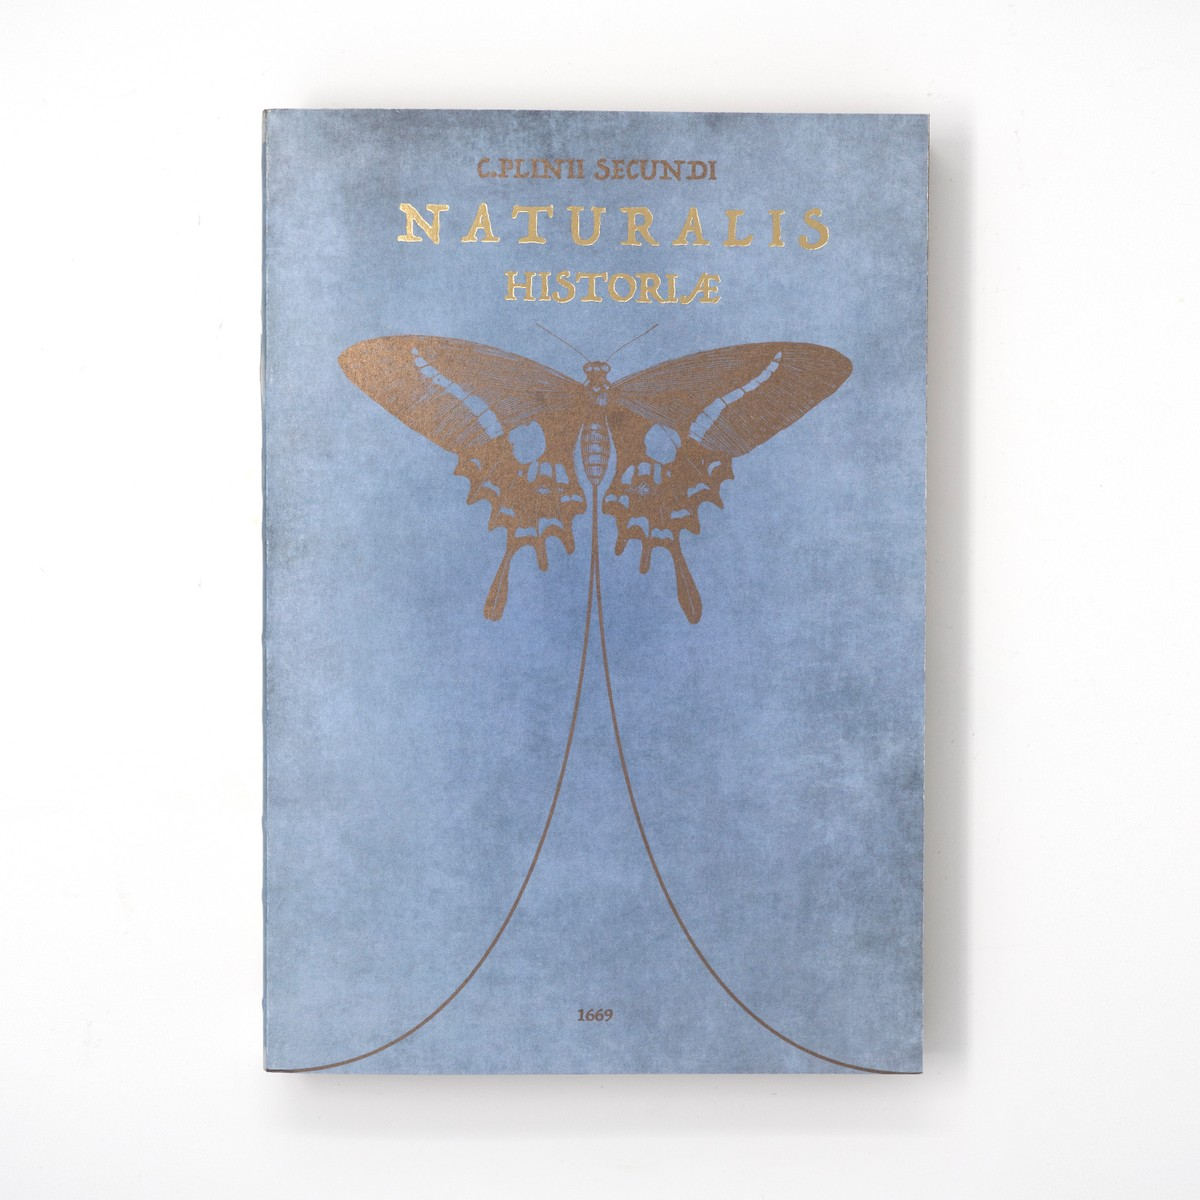 Photo of Naturalis Historiae Notebook